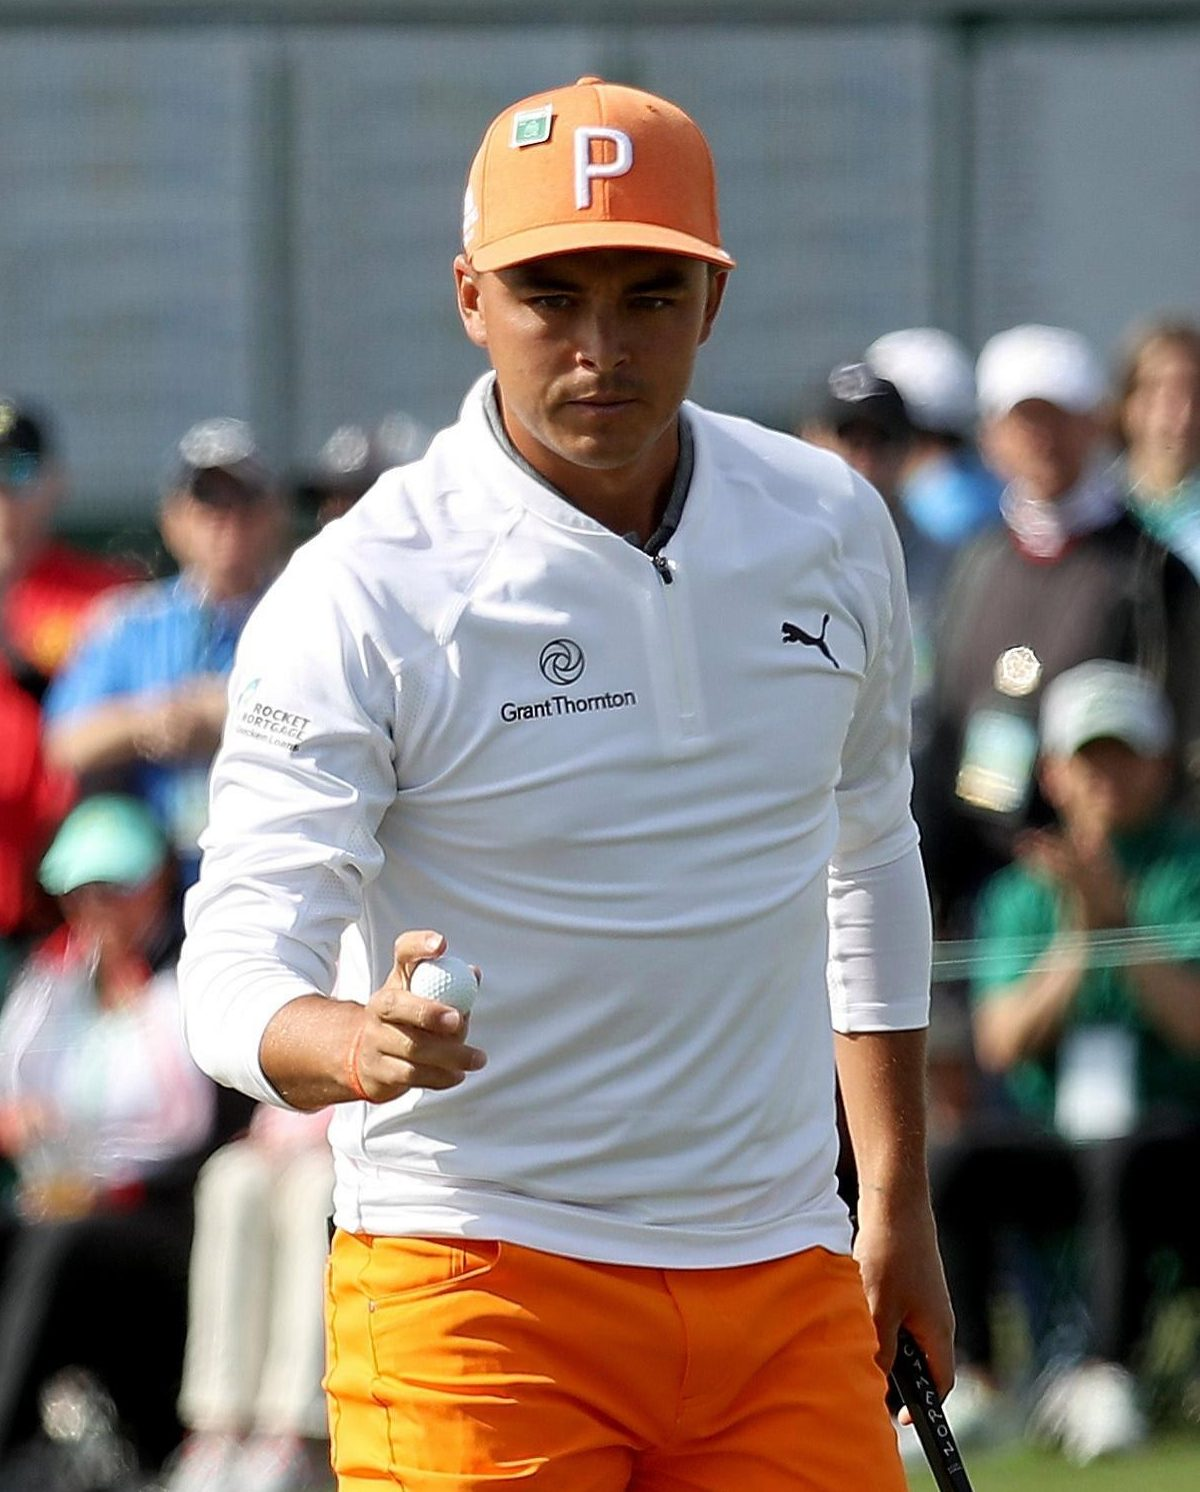 Rickie Fowler finished one shot shy of Patrick Reed